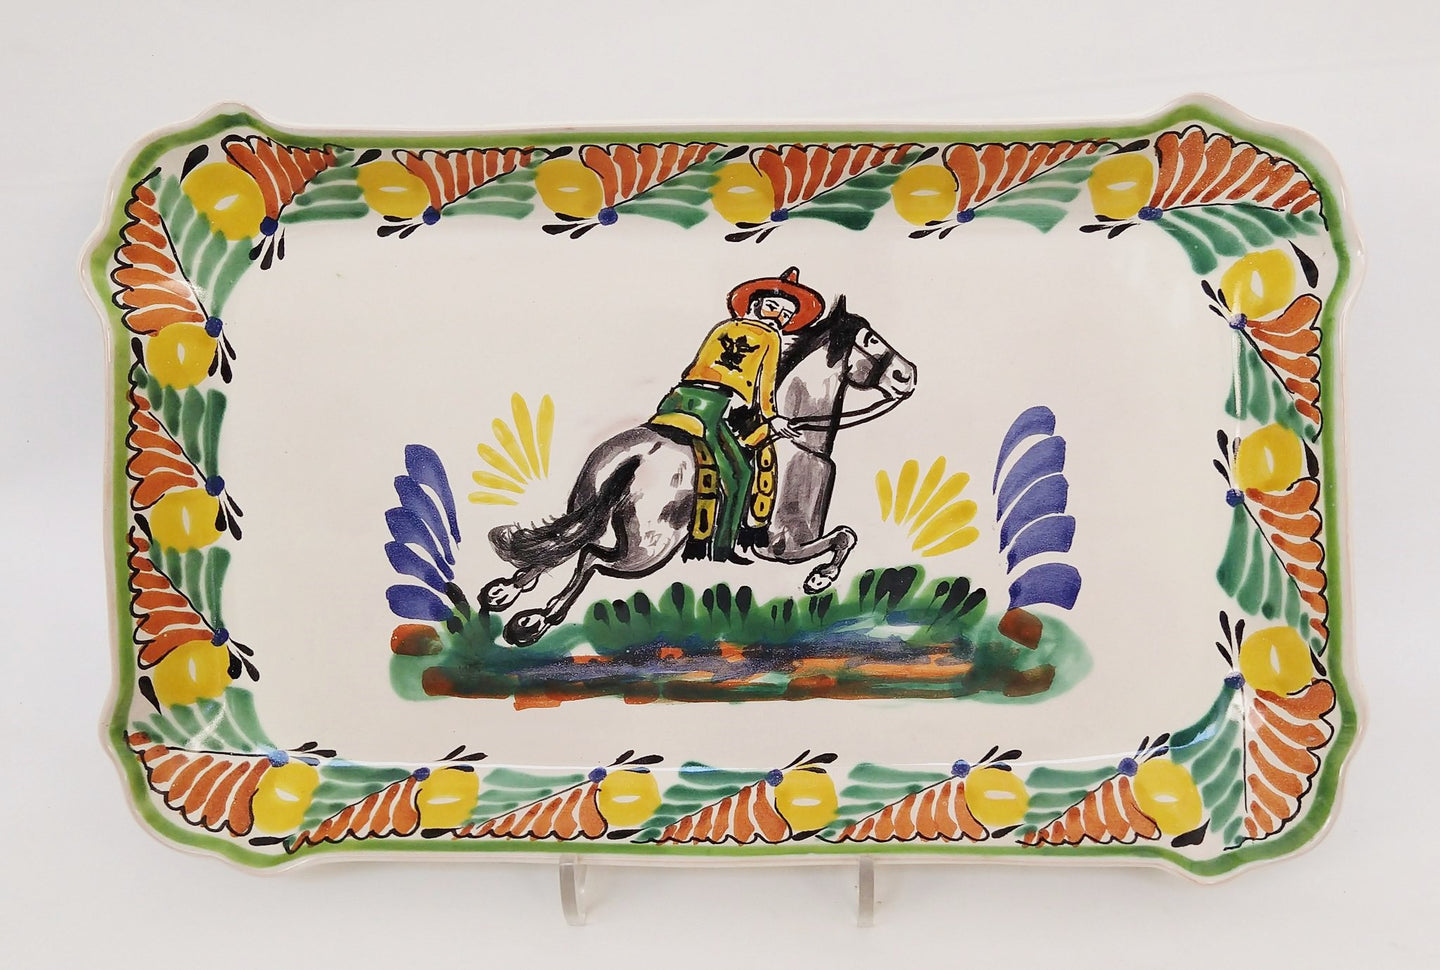 CowBoy Rectangular Platter 10.6 X 16.9 in Green-Terracota-Yellow Colors